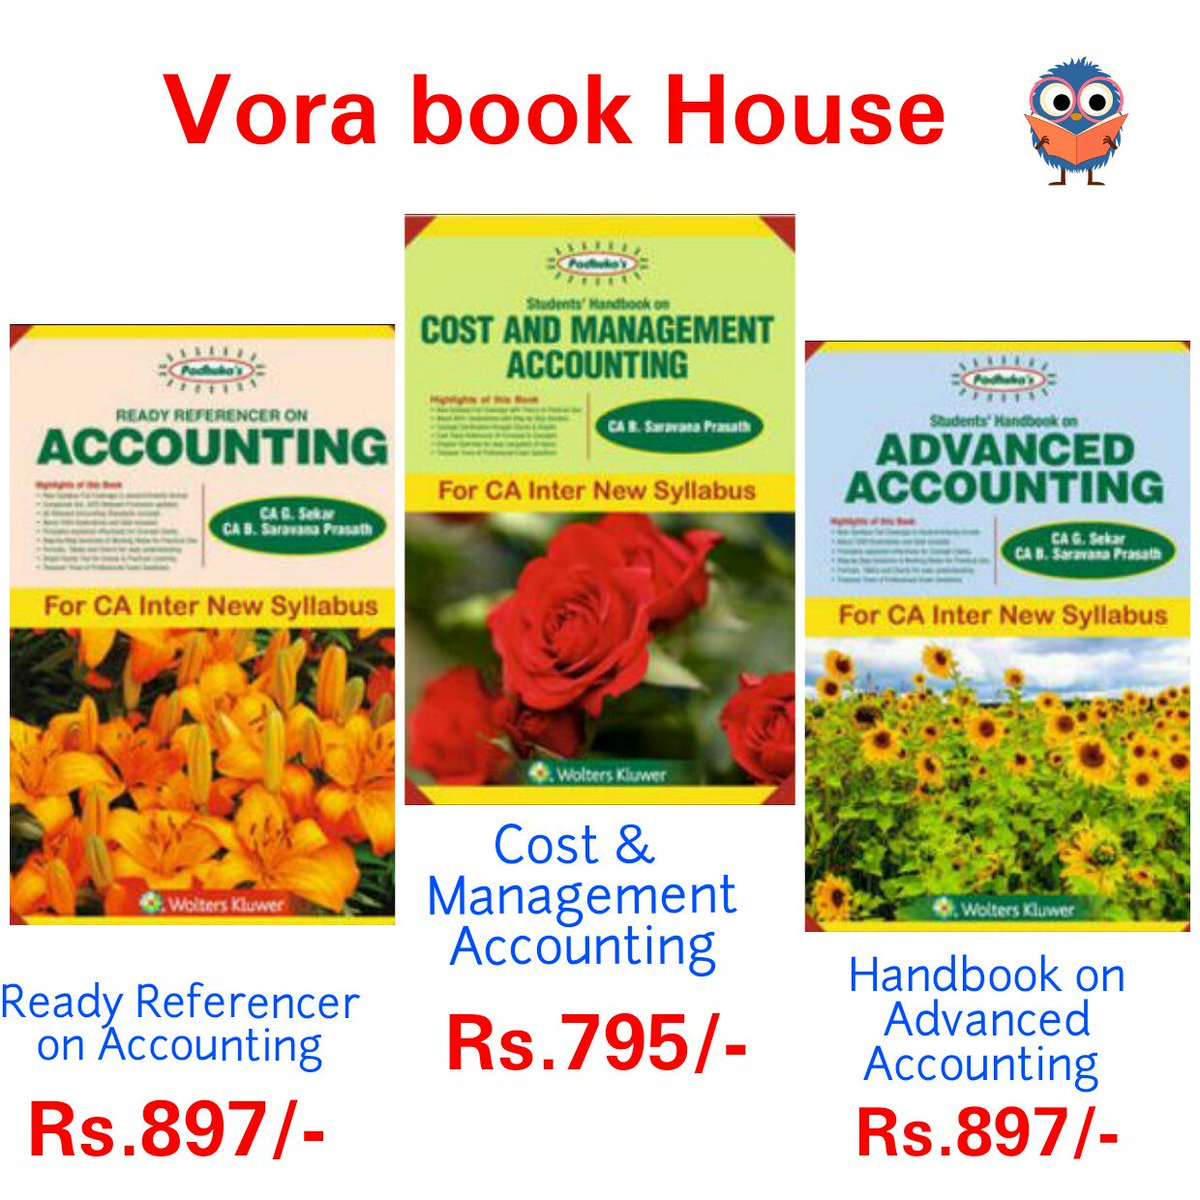 New Books for ca/cs/cma students  http://Www. vorabook.com  &nbsp;    #vorabookhouse  #law #ca #exam#final #cs #cma #acconting #standards #management<br>http://pic.twitter.com/e6Y5RLDiaJ